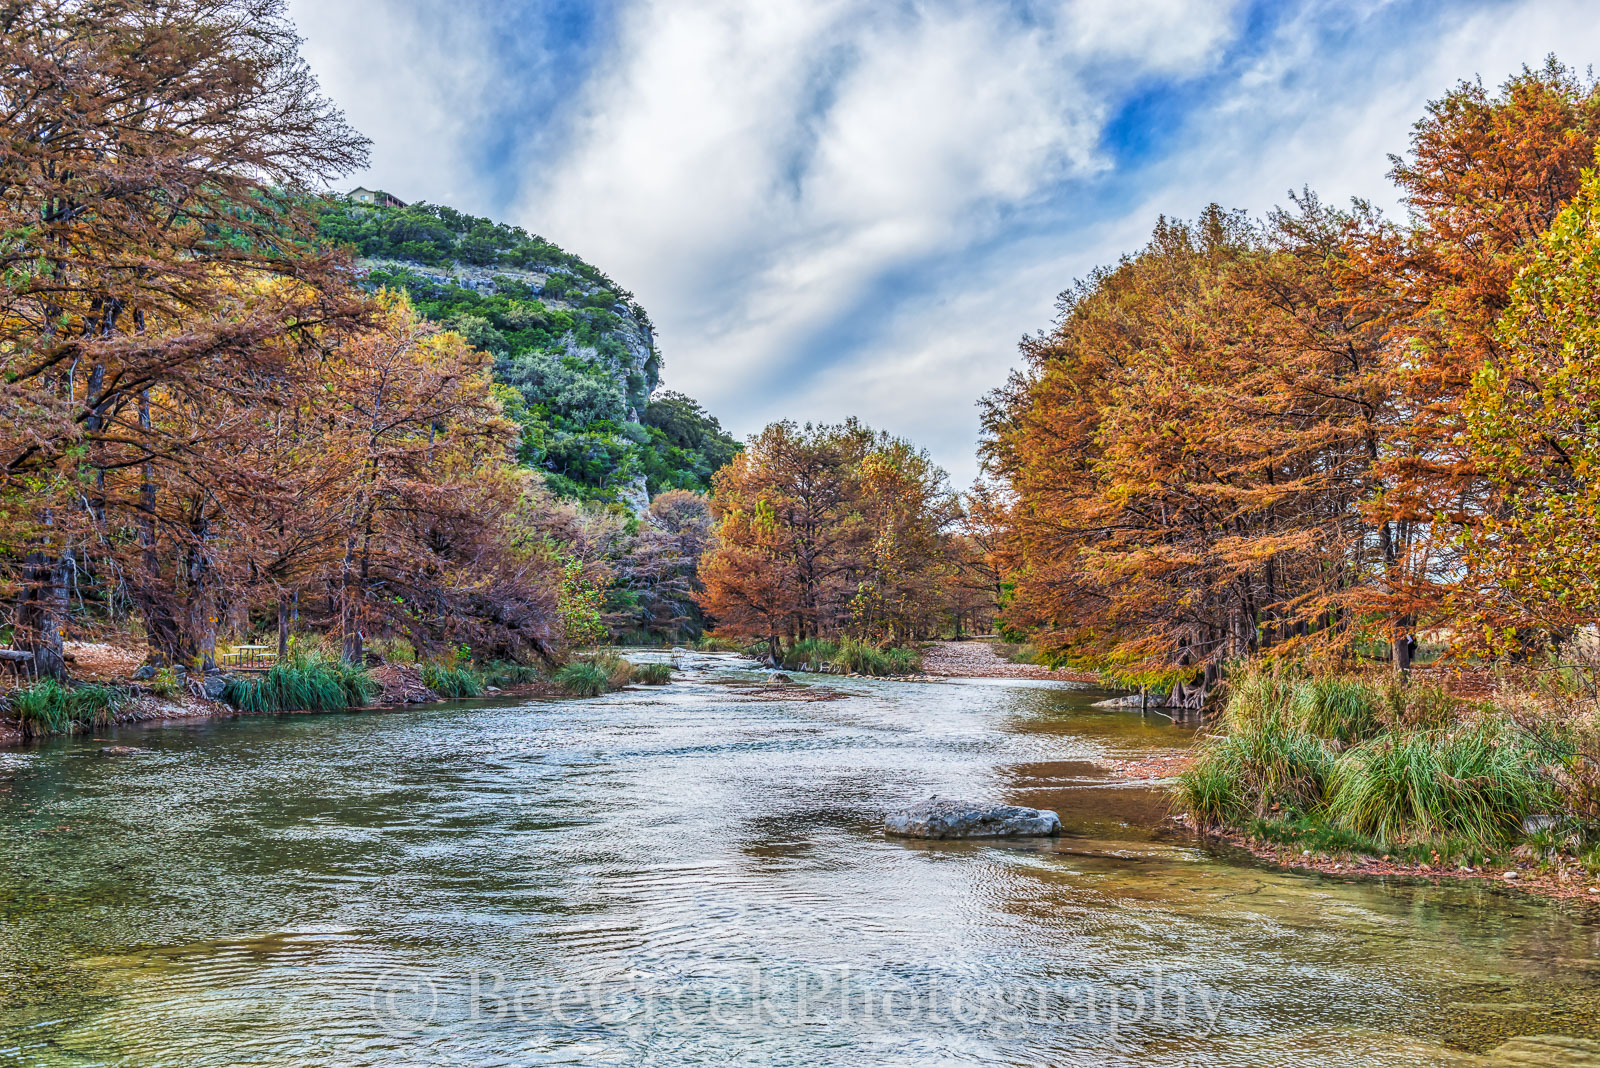 America, American, Con Can, Frio River, Hill Country, blue green waters, blue water, clear water, colorful, fall, fall cypress trees, fall images, fall landscapes, images of Texas, landscape, texas la, photo